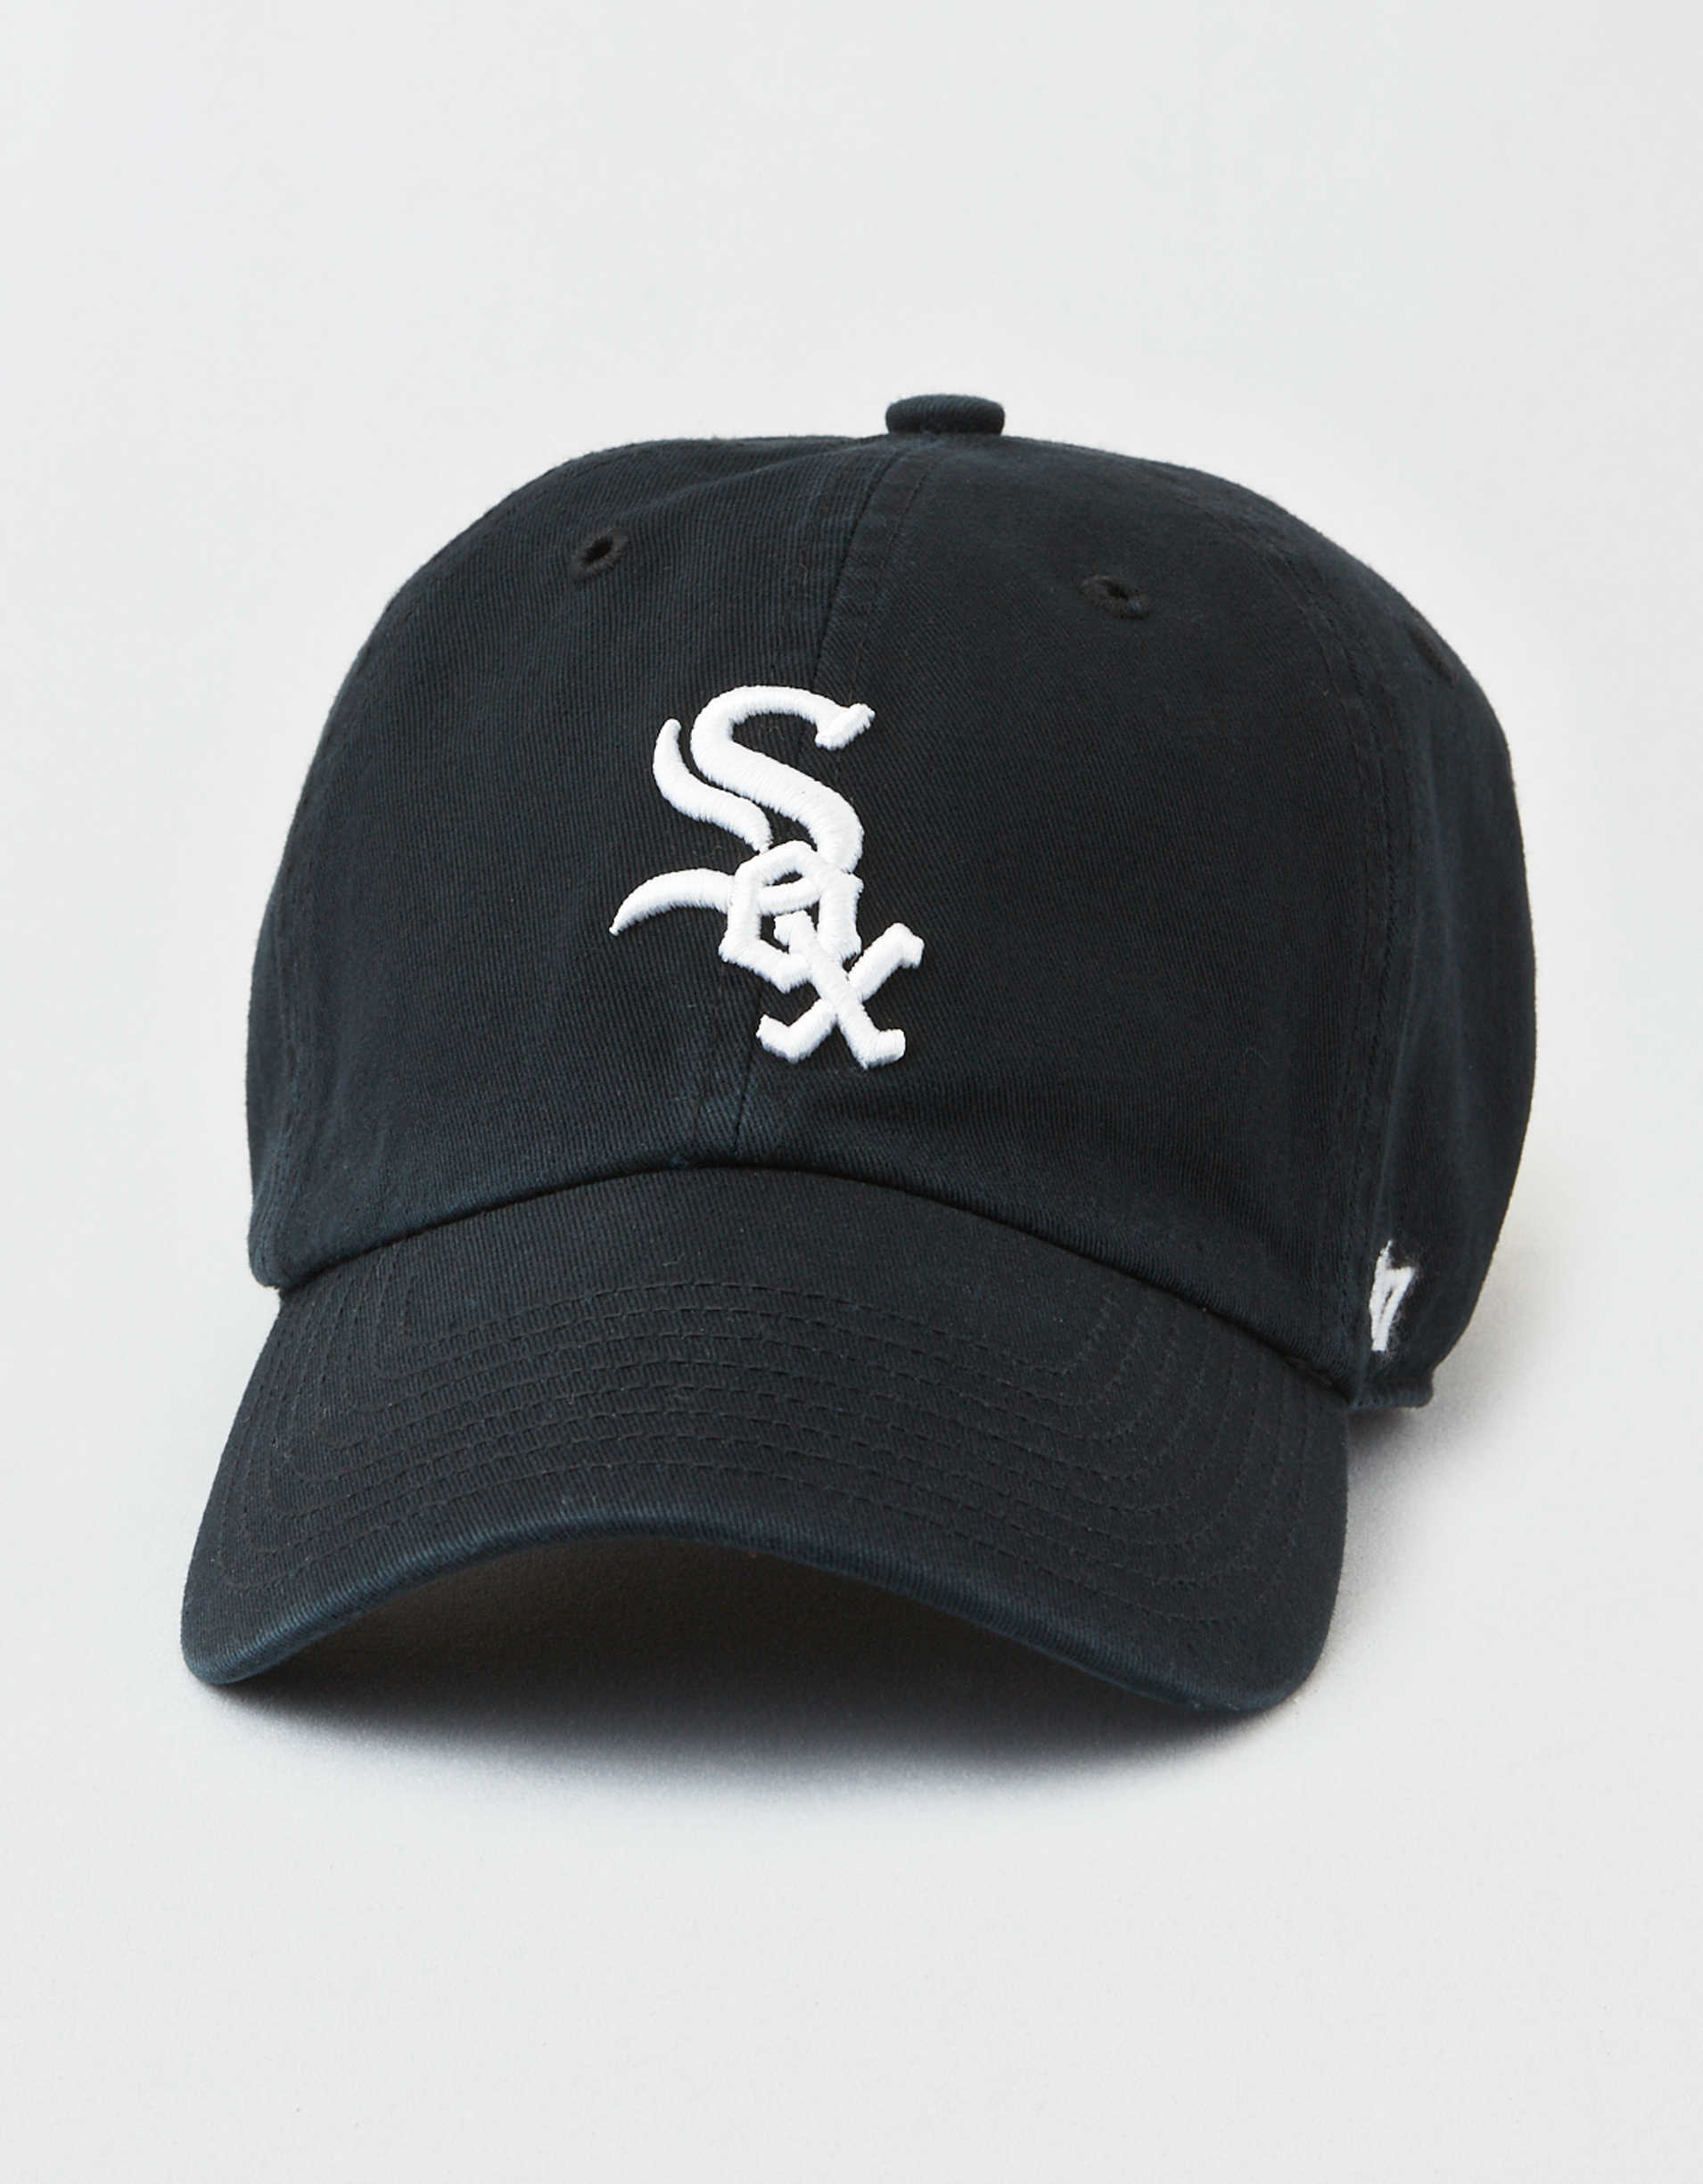 '47 Brand Chicago White Sox Baseball Hat